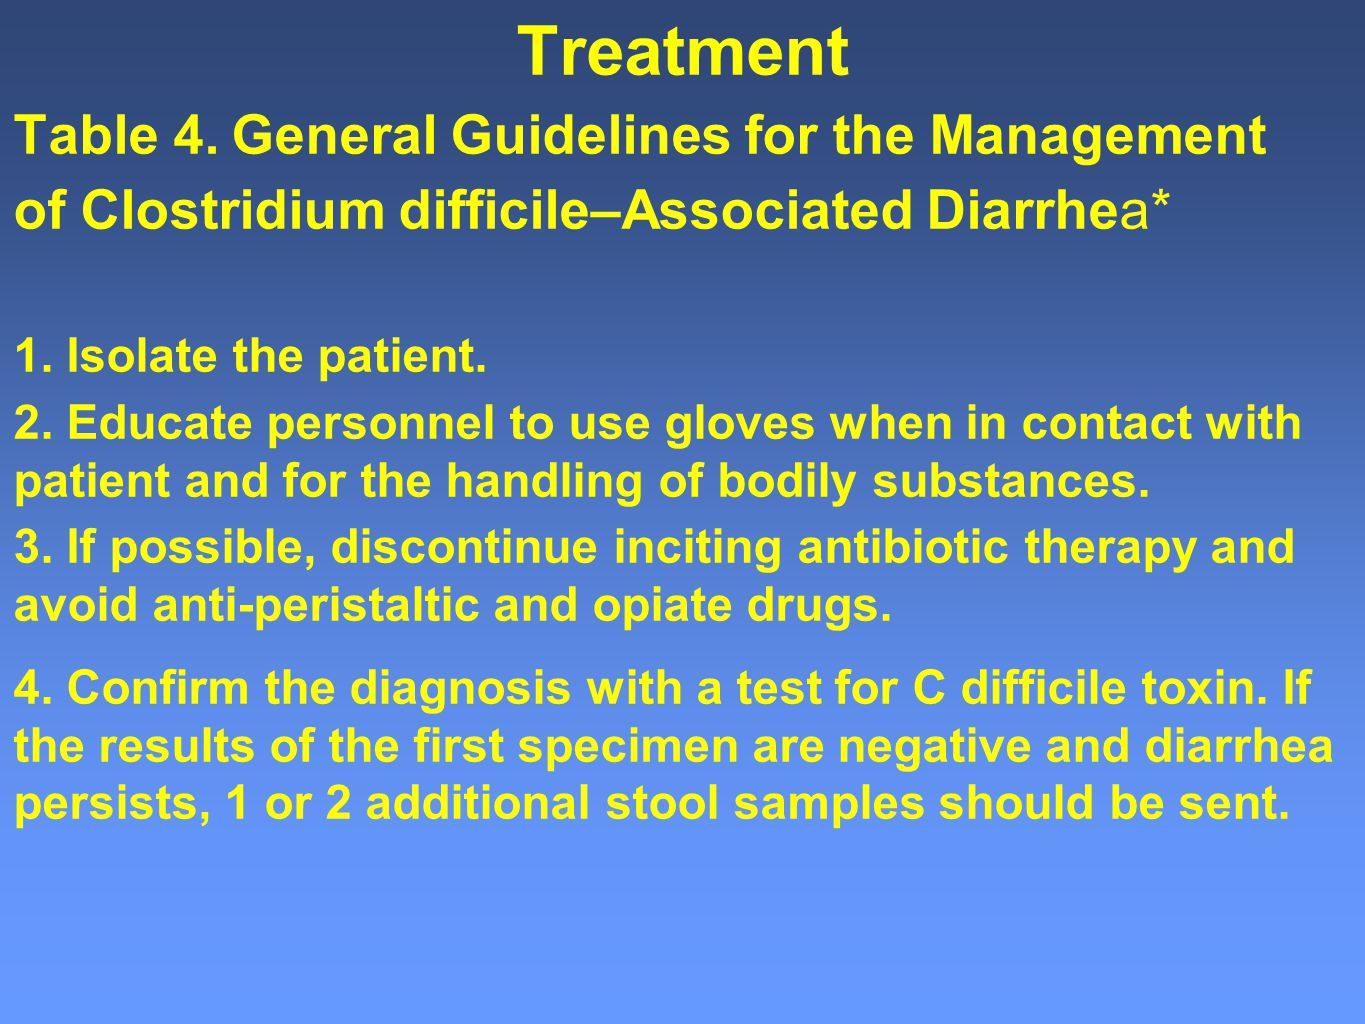 Treatment Table 4. General Guidelines for the Management